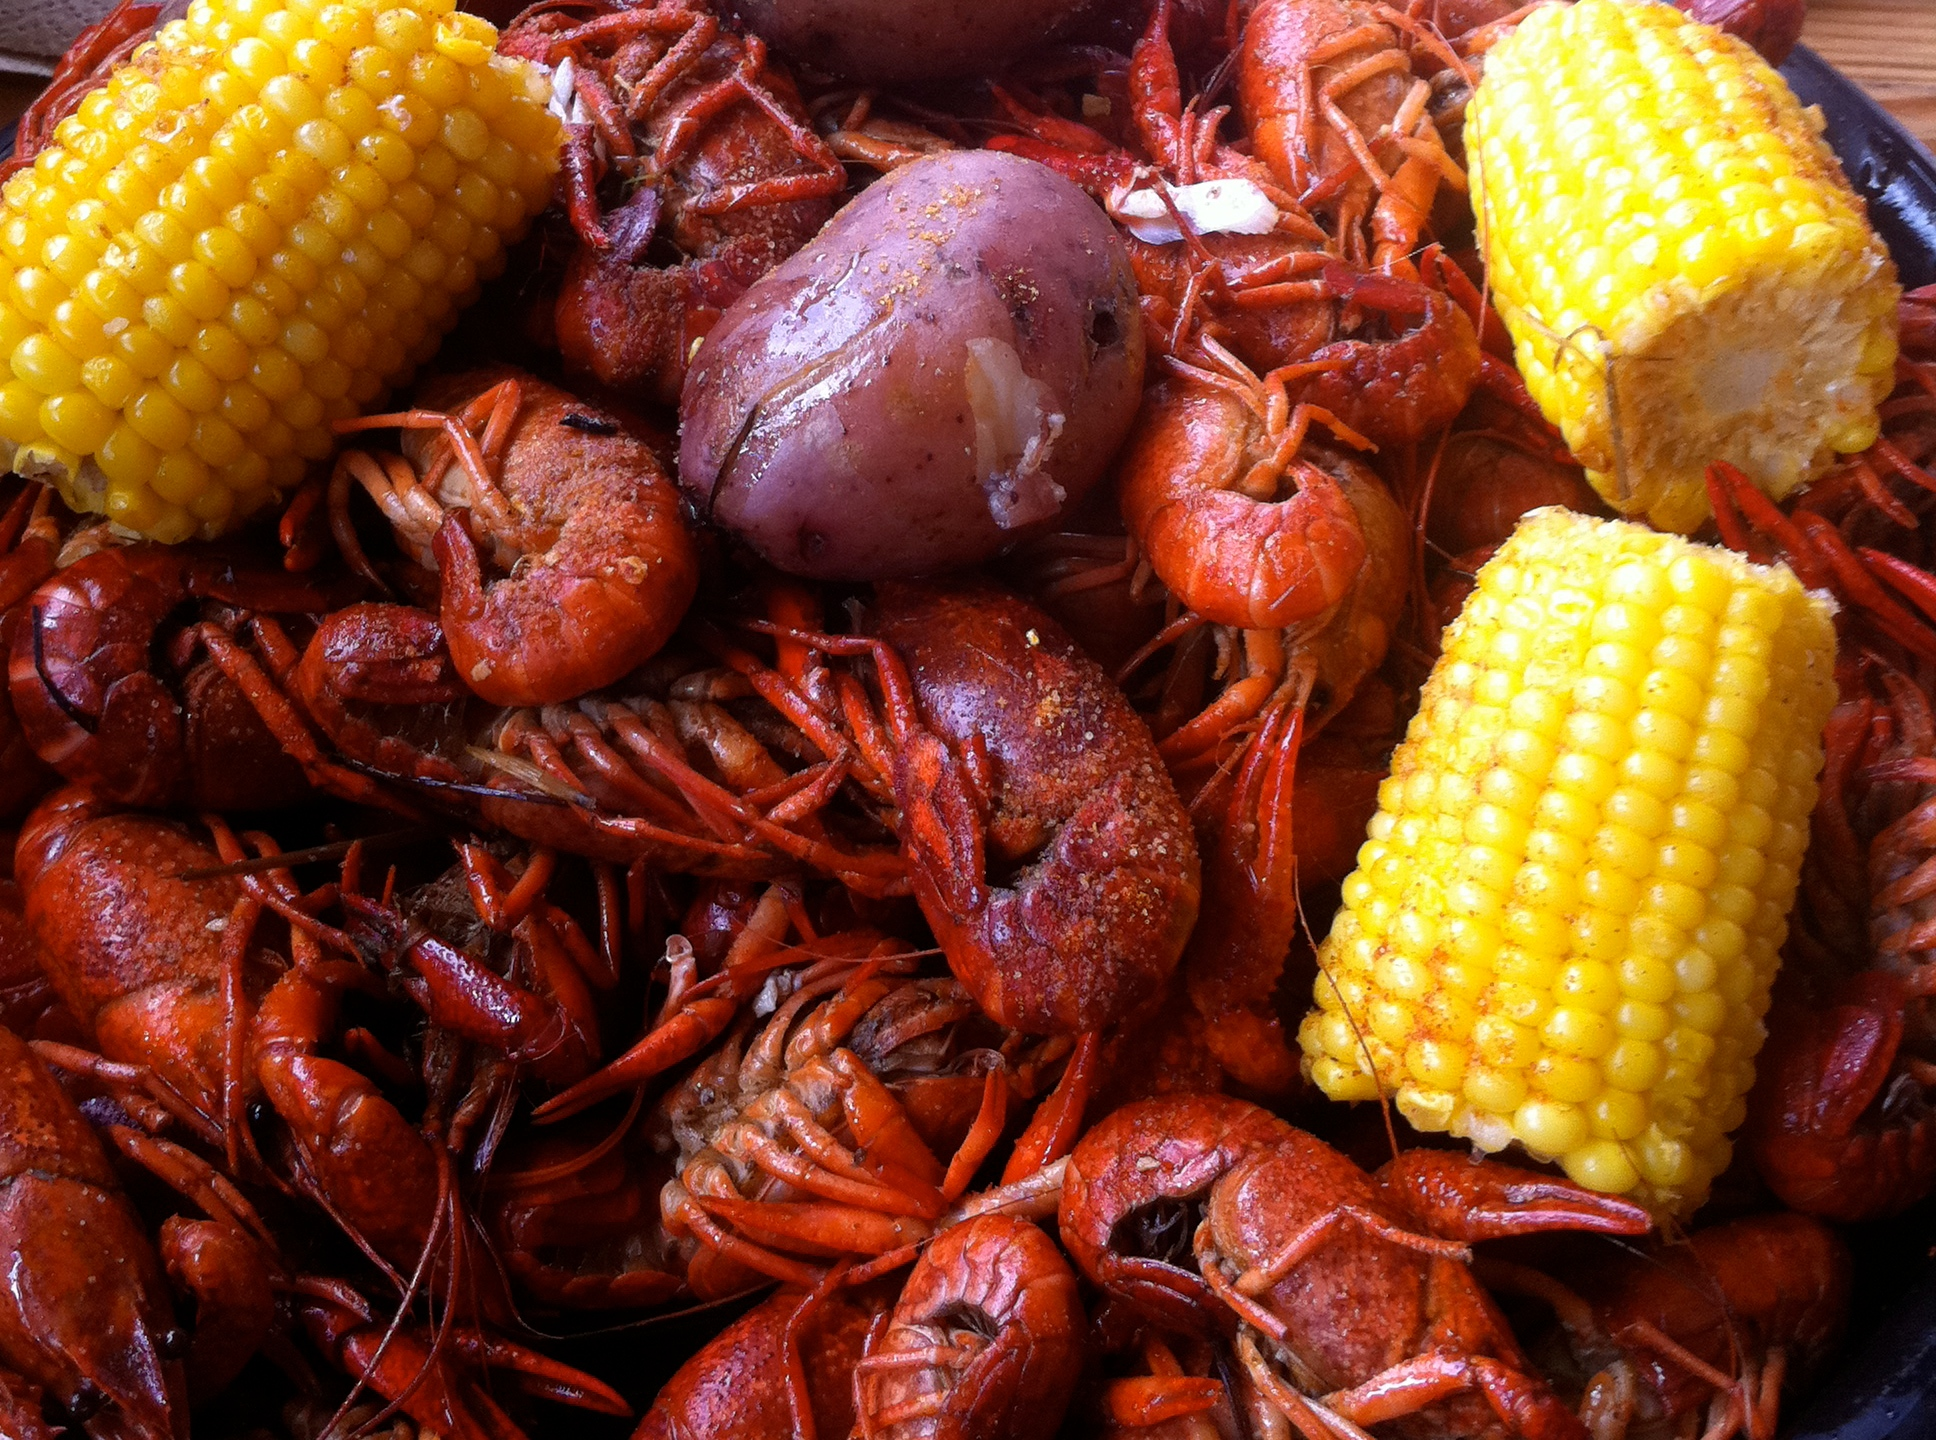 Crawfish_Boil_1555698185907.jpg